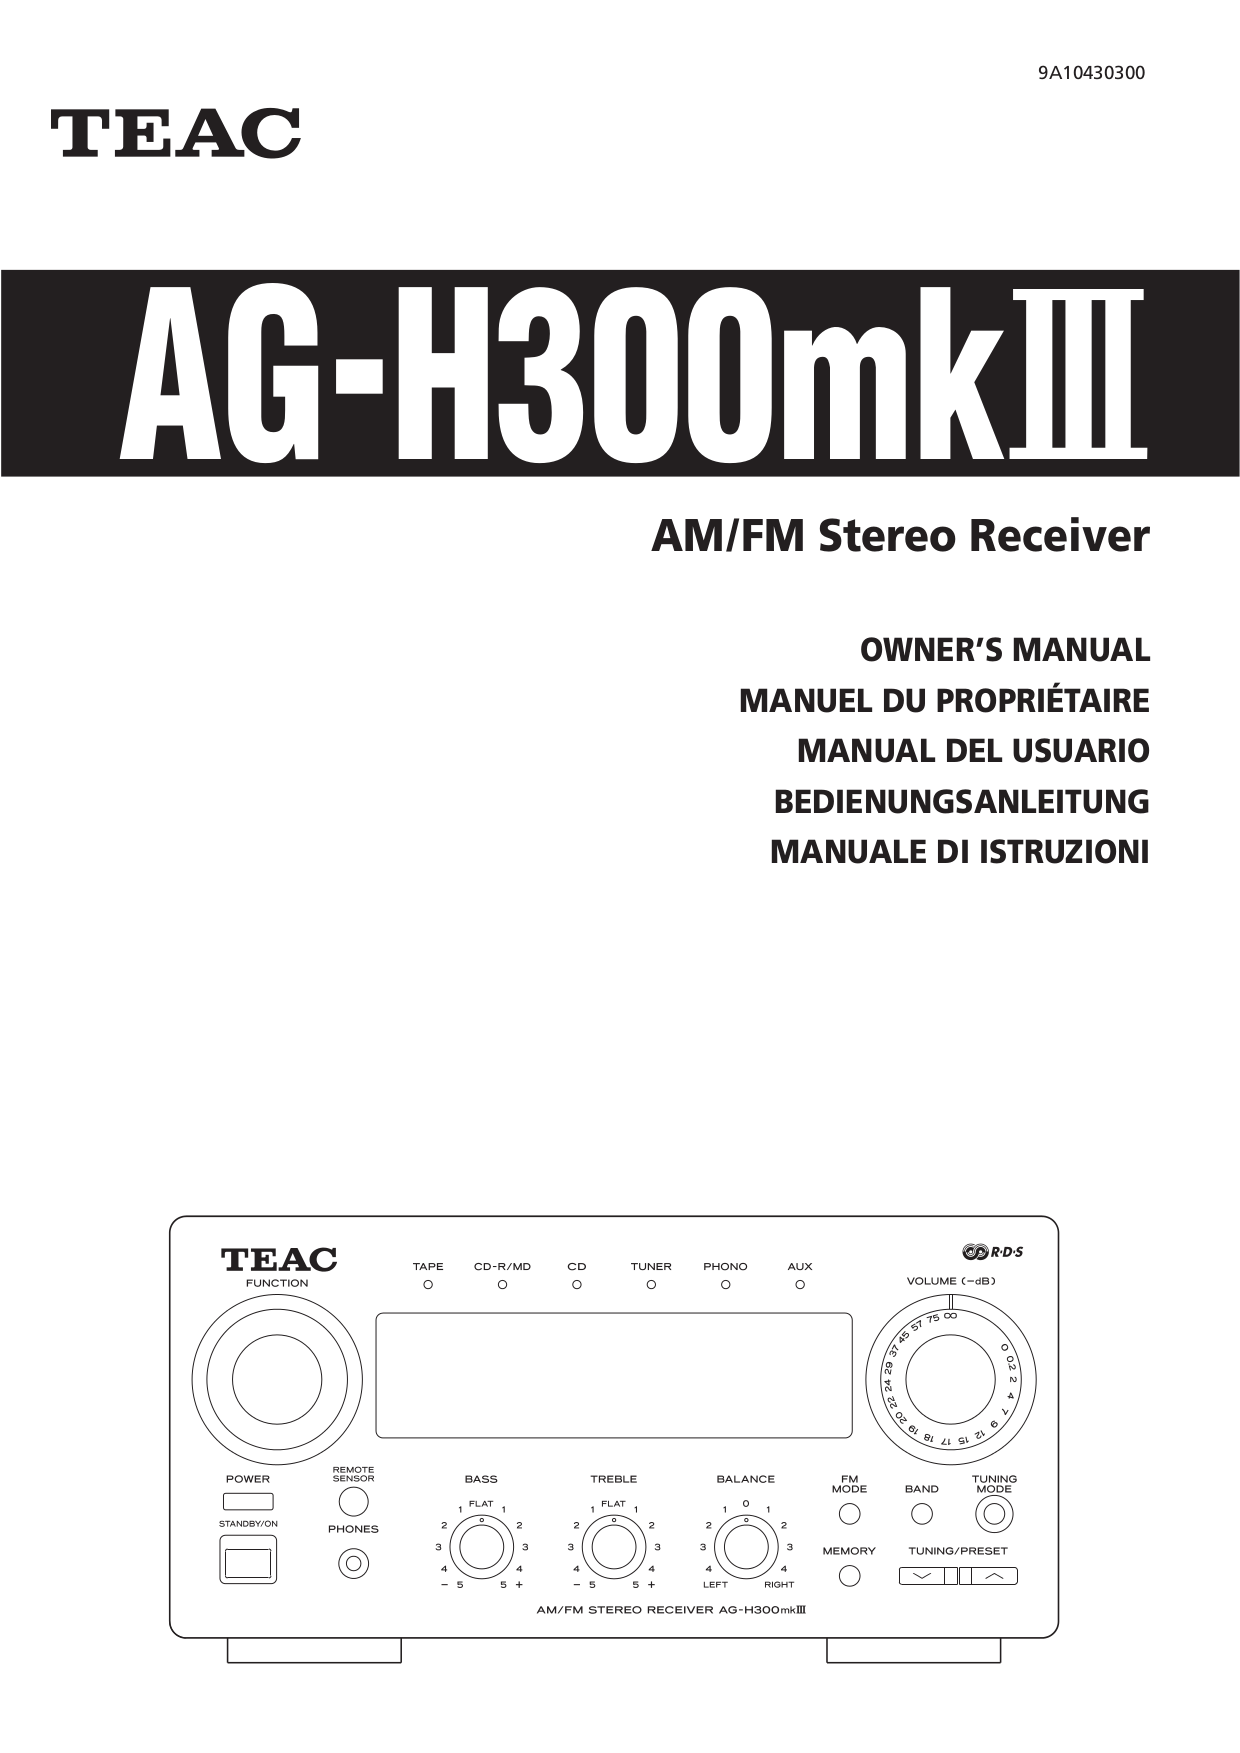 Download free pdf for Teac AG-H300 Receiver manual